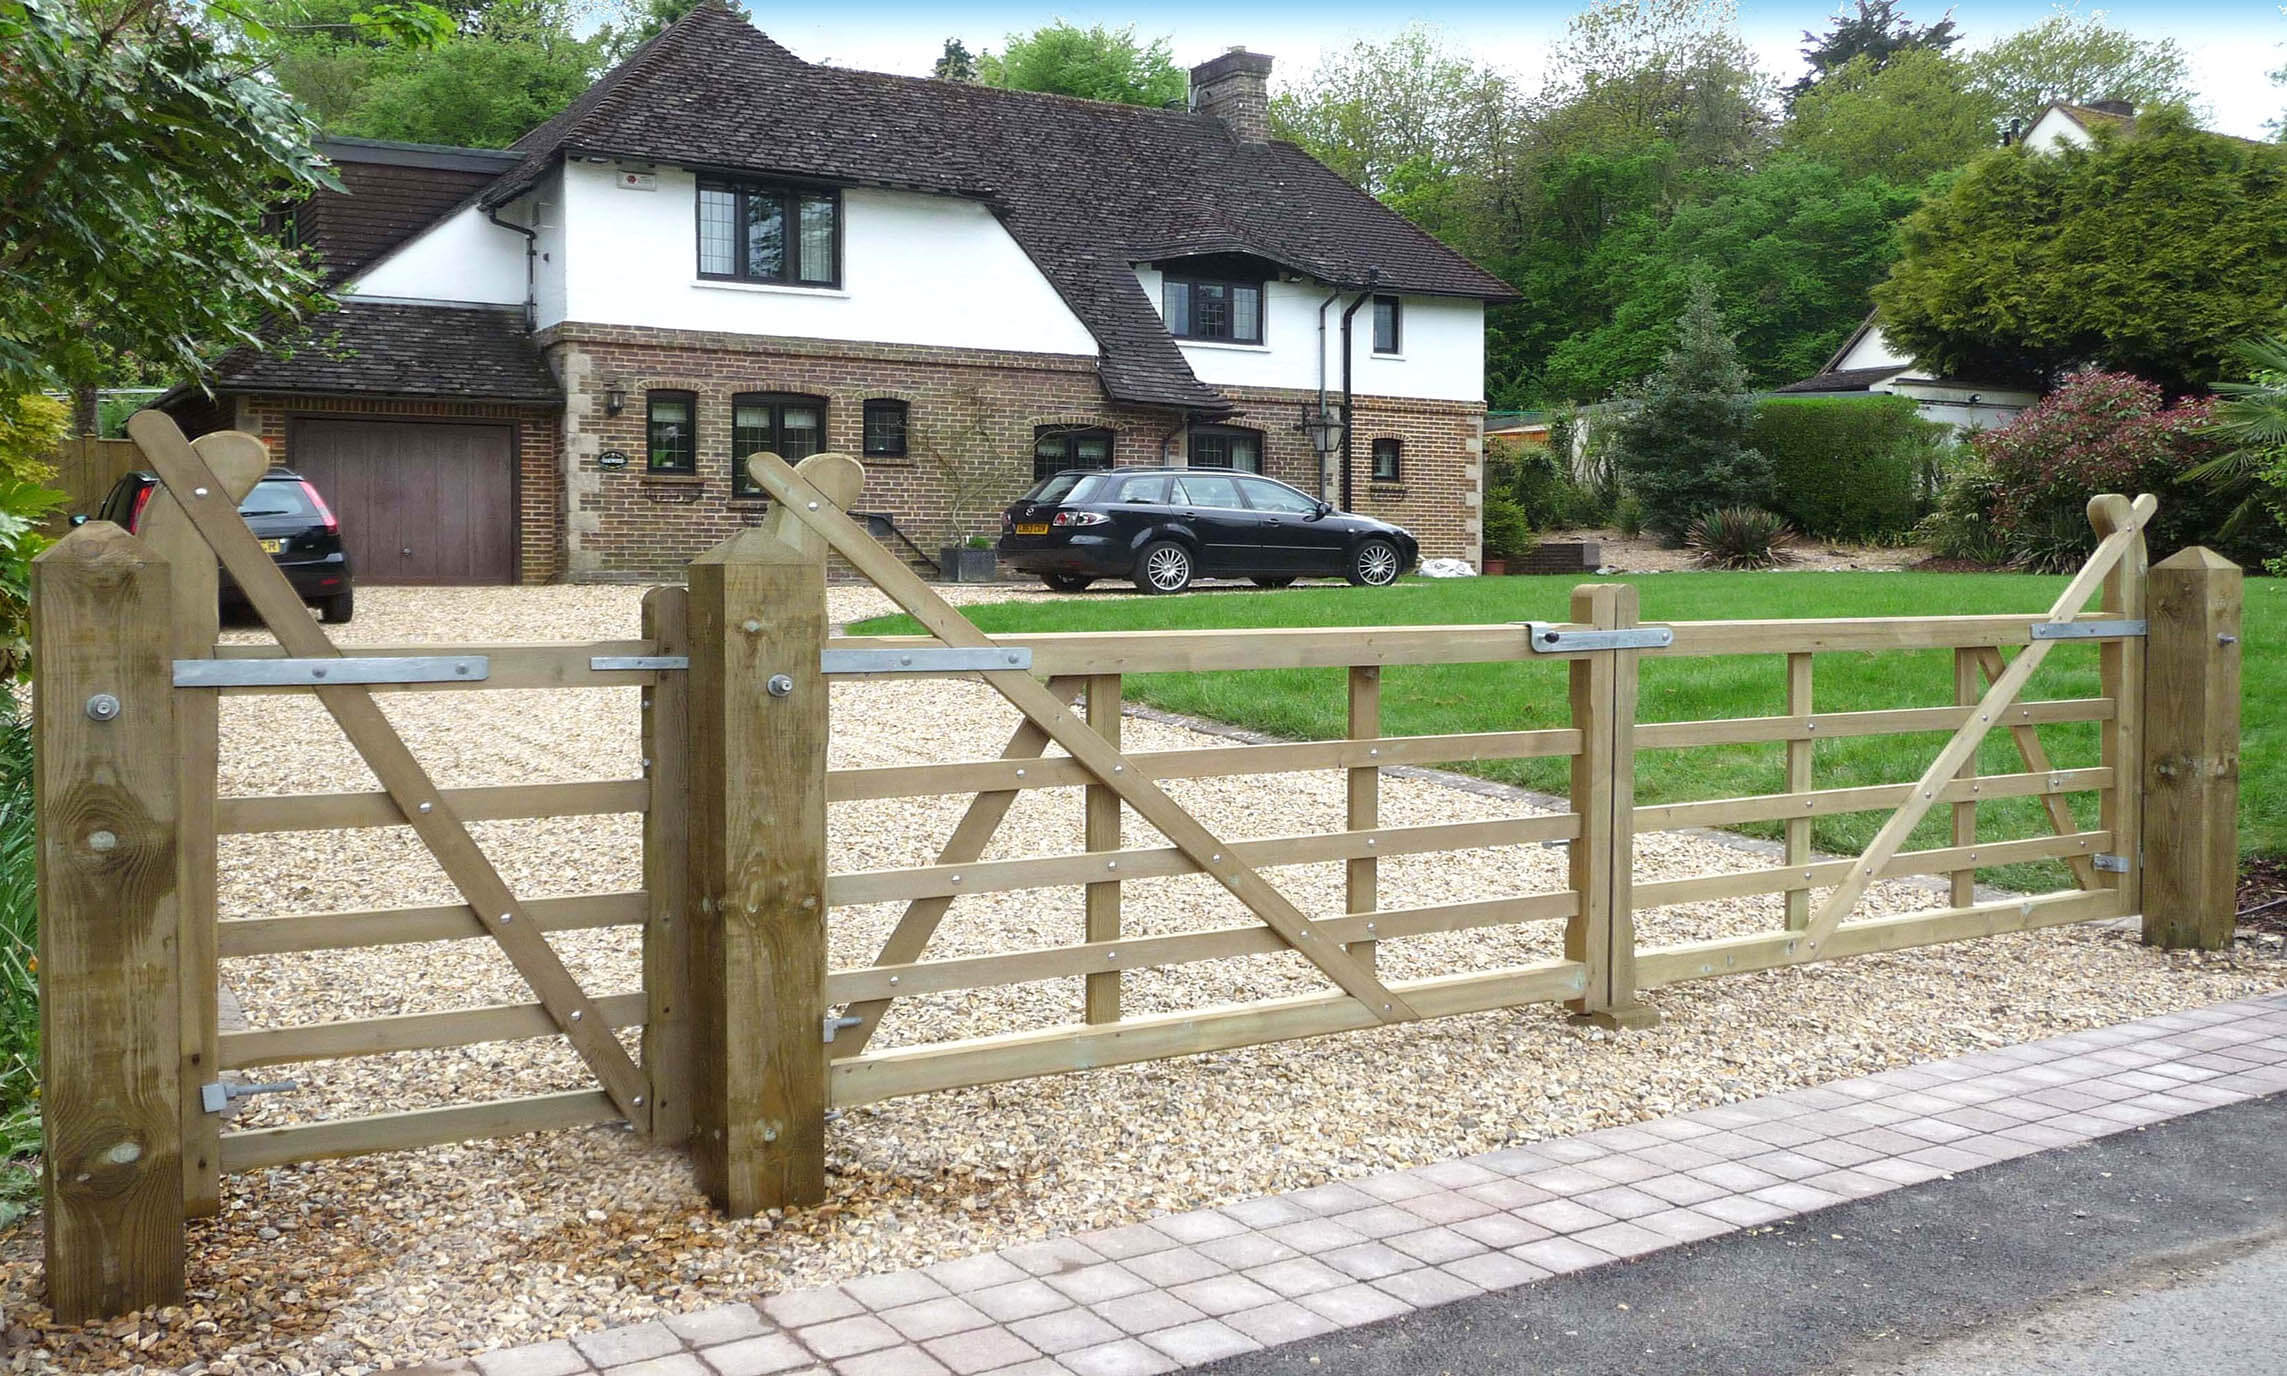 Timber entrance gates on driveway